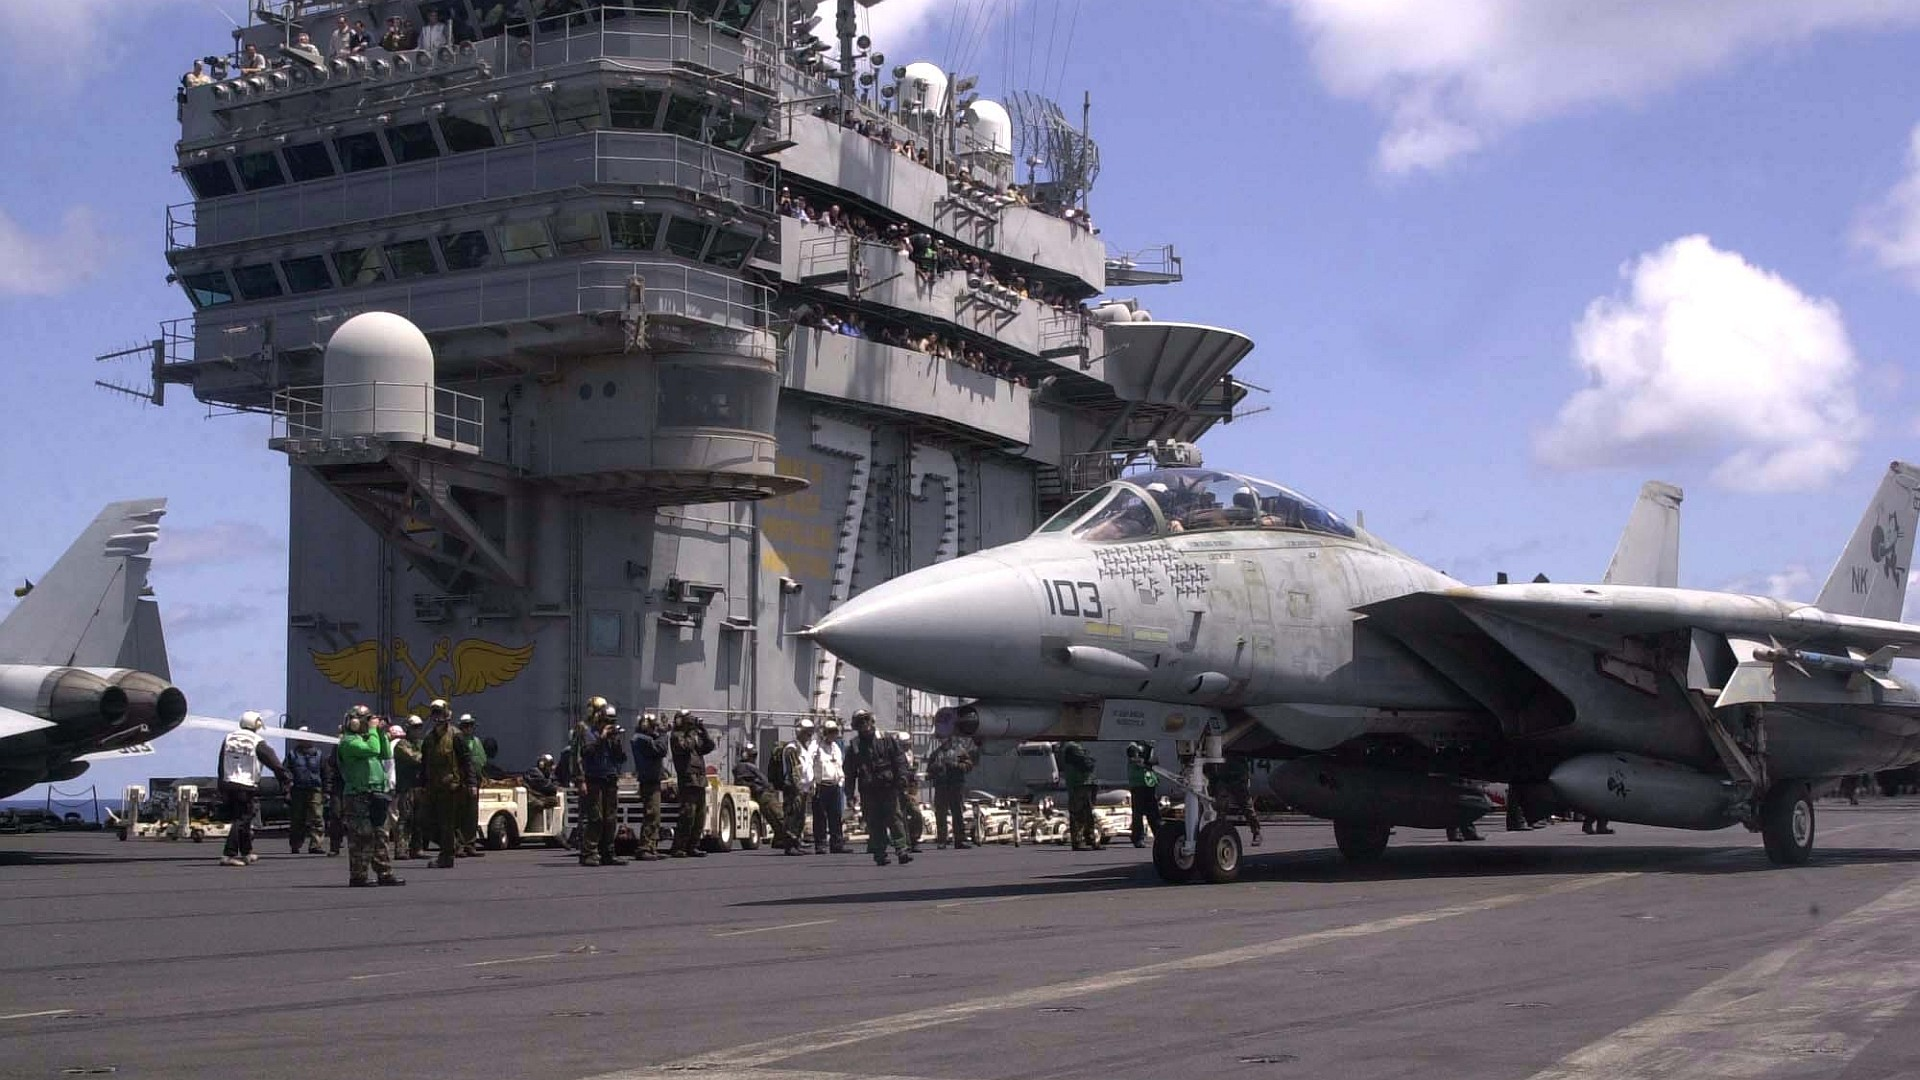 1920x1080  HD wallpaper of a F-14 Tomcat preparing for carrier take-off. The  widescreen version (1920x1200) of this #wallpaper can be found at ...